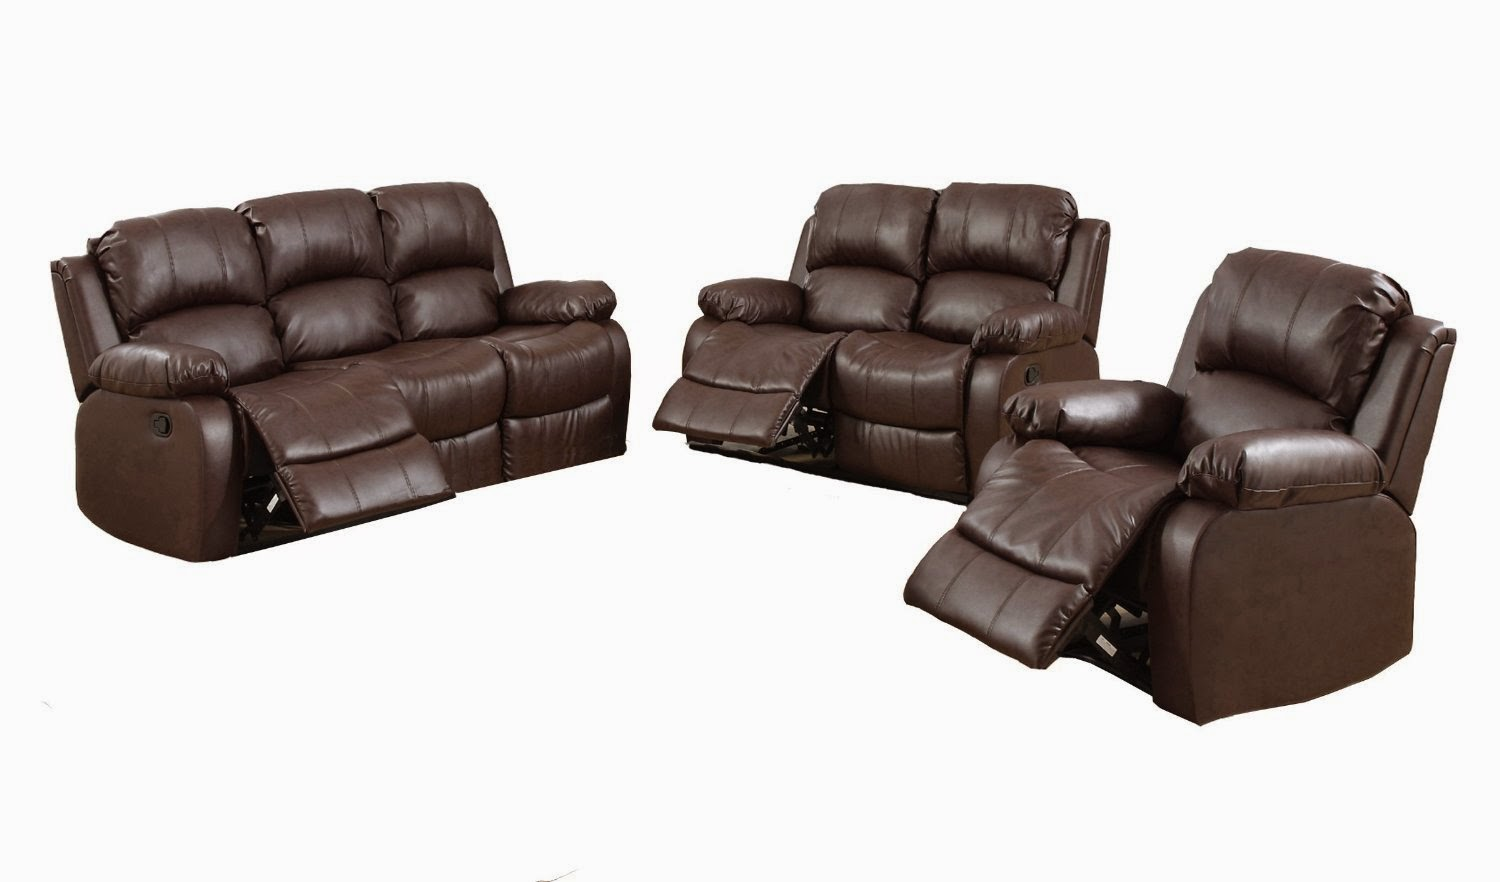 Reclining sofa sets sale cheap reclining sofas sale for Sofa set for sale cheap